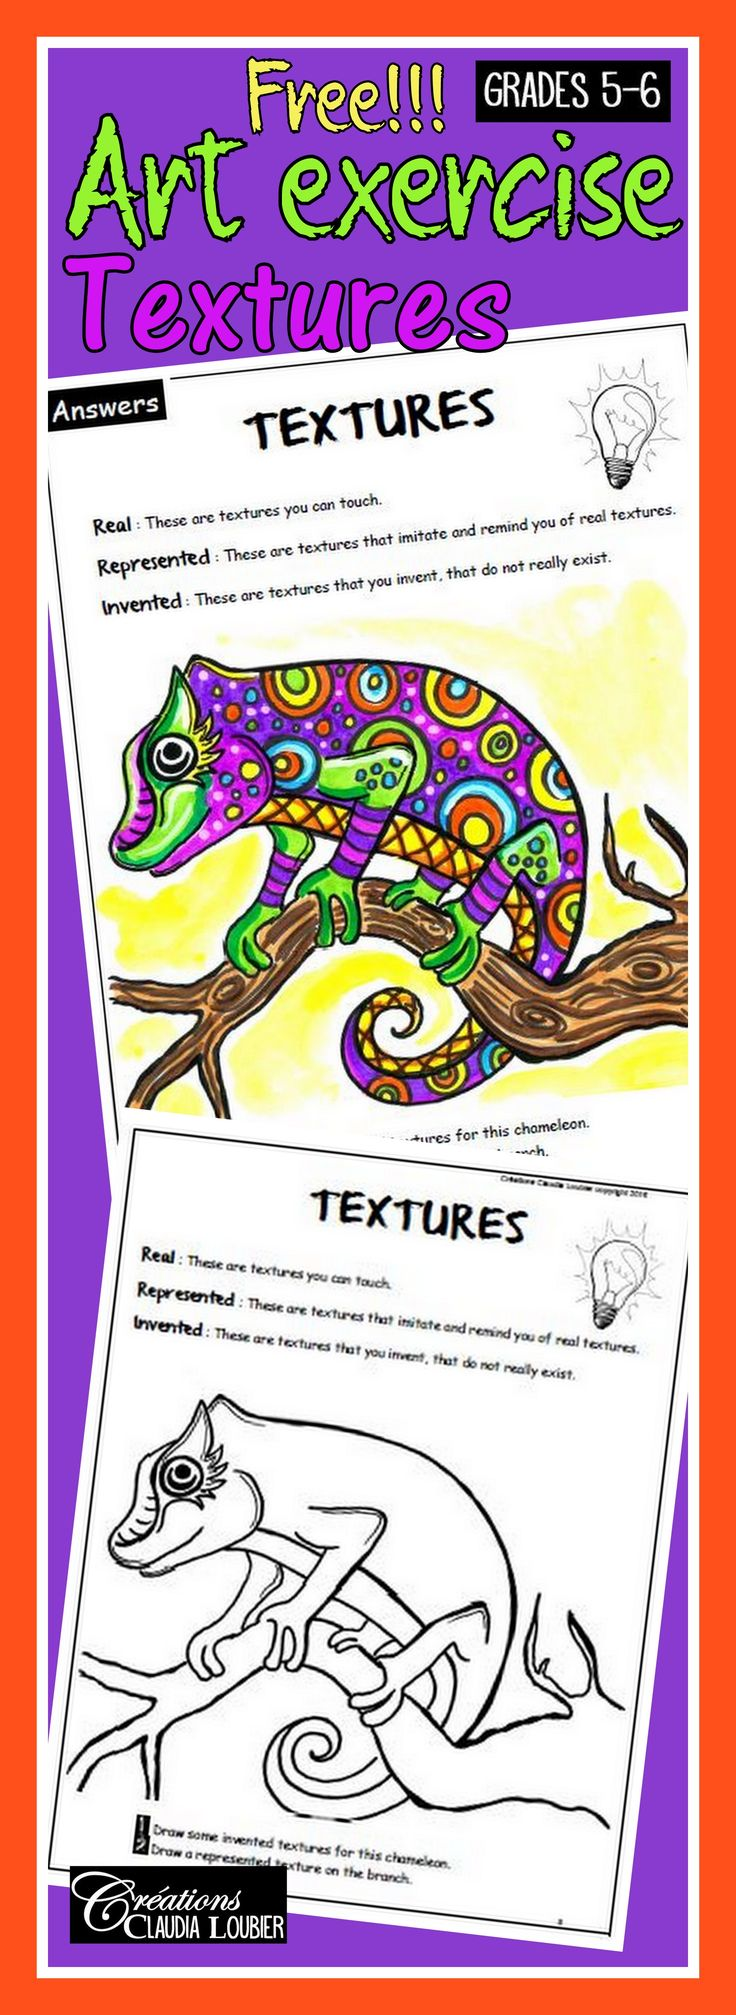 I am happy to share this free reproducible sheet to teach textures. This exercise IS PART OF a collection of 14 exercises, covering all of the ART language in primary school. Grades 5-6